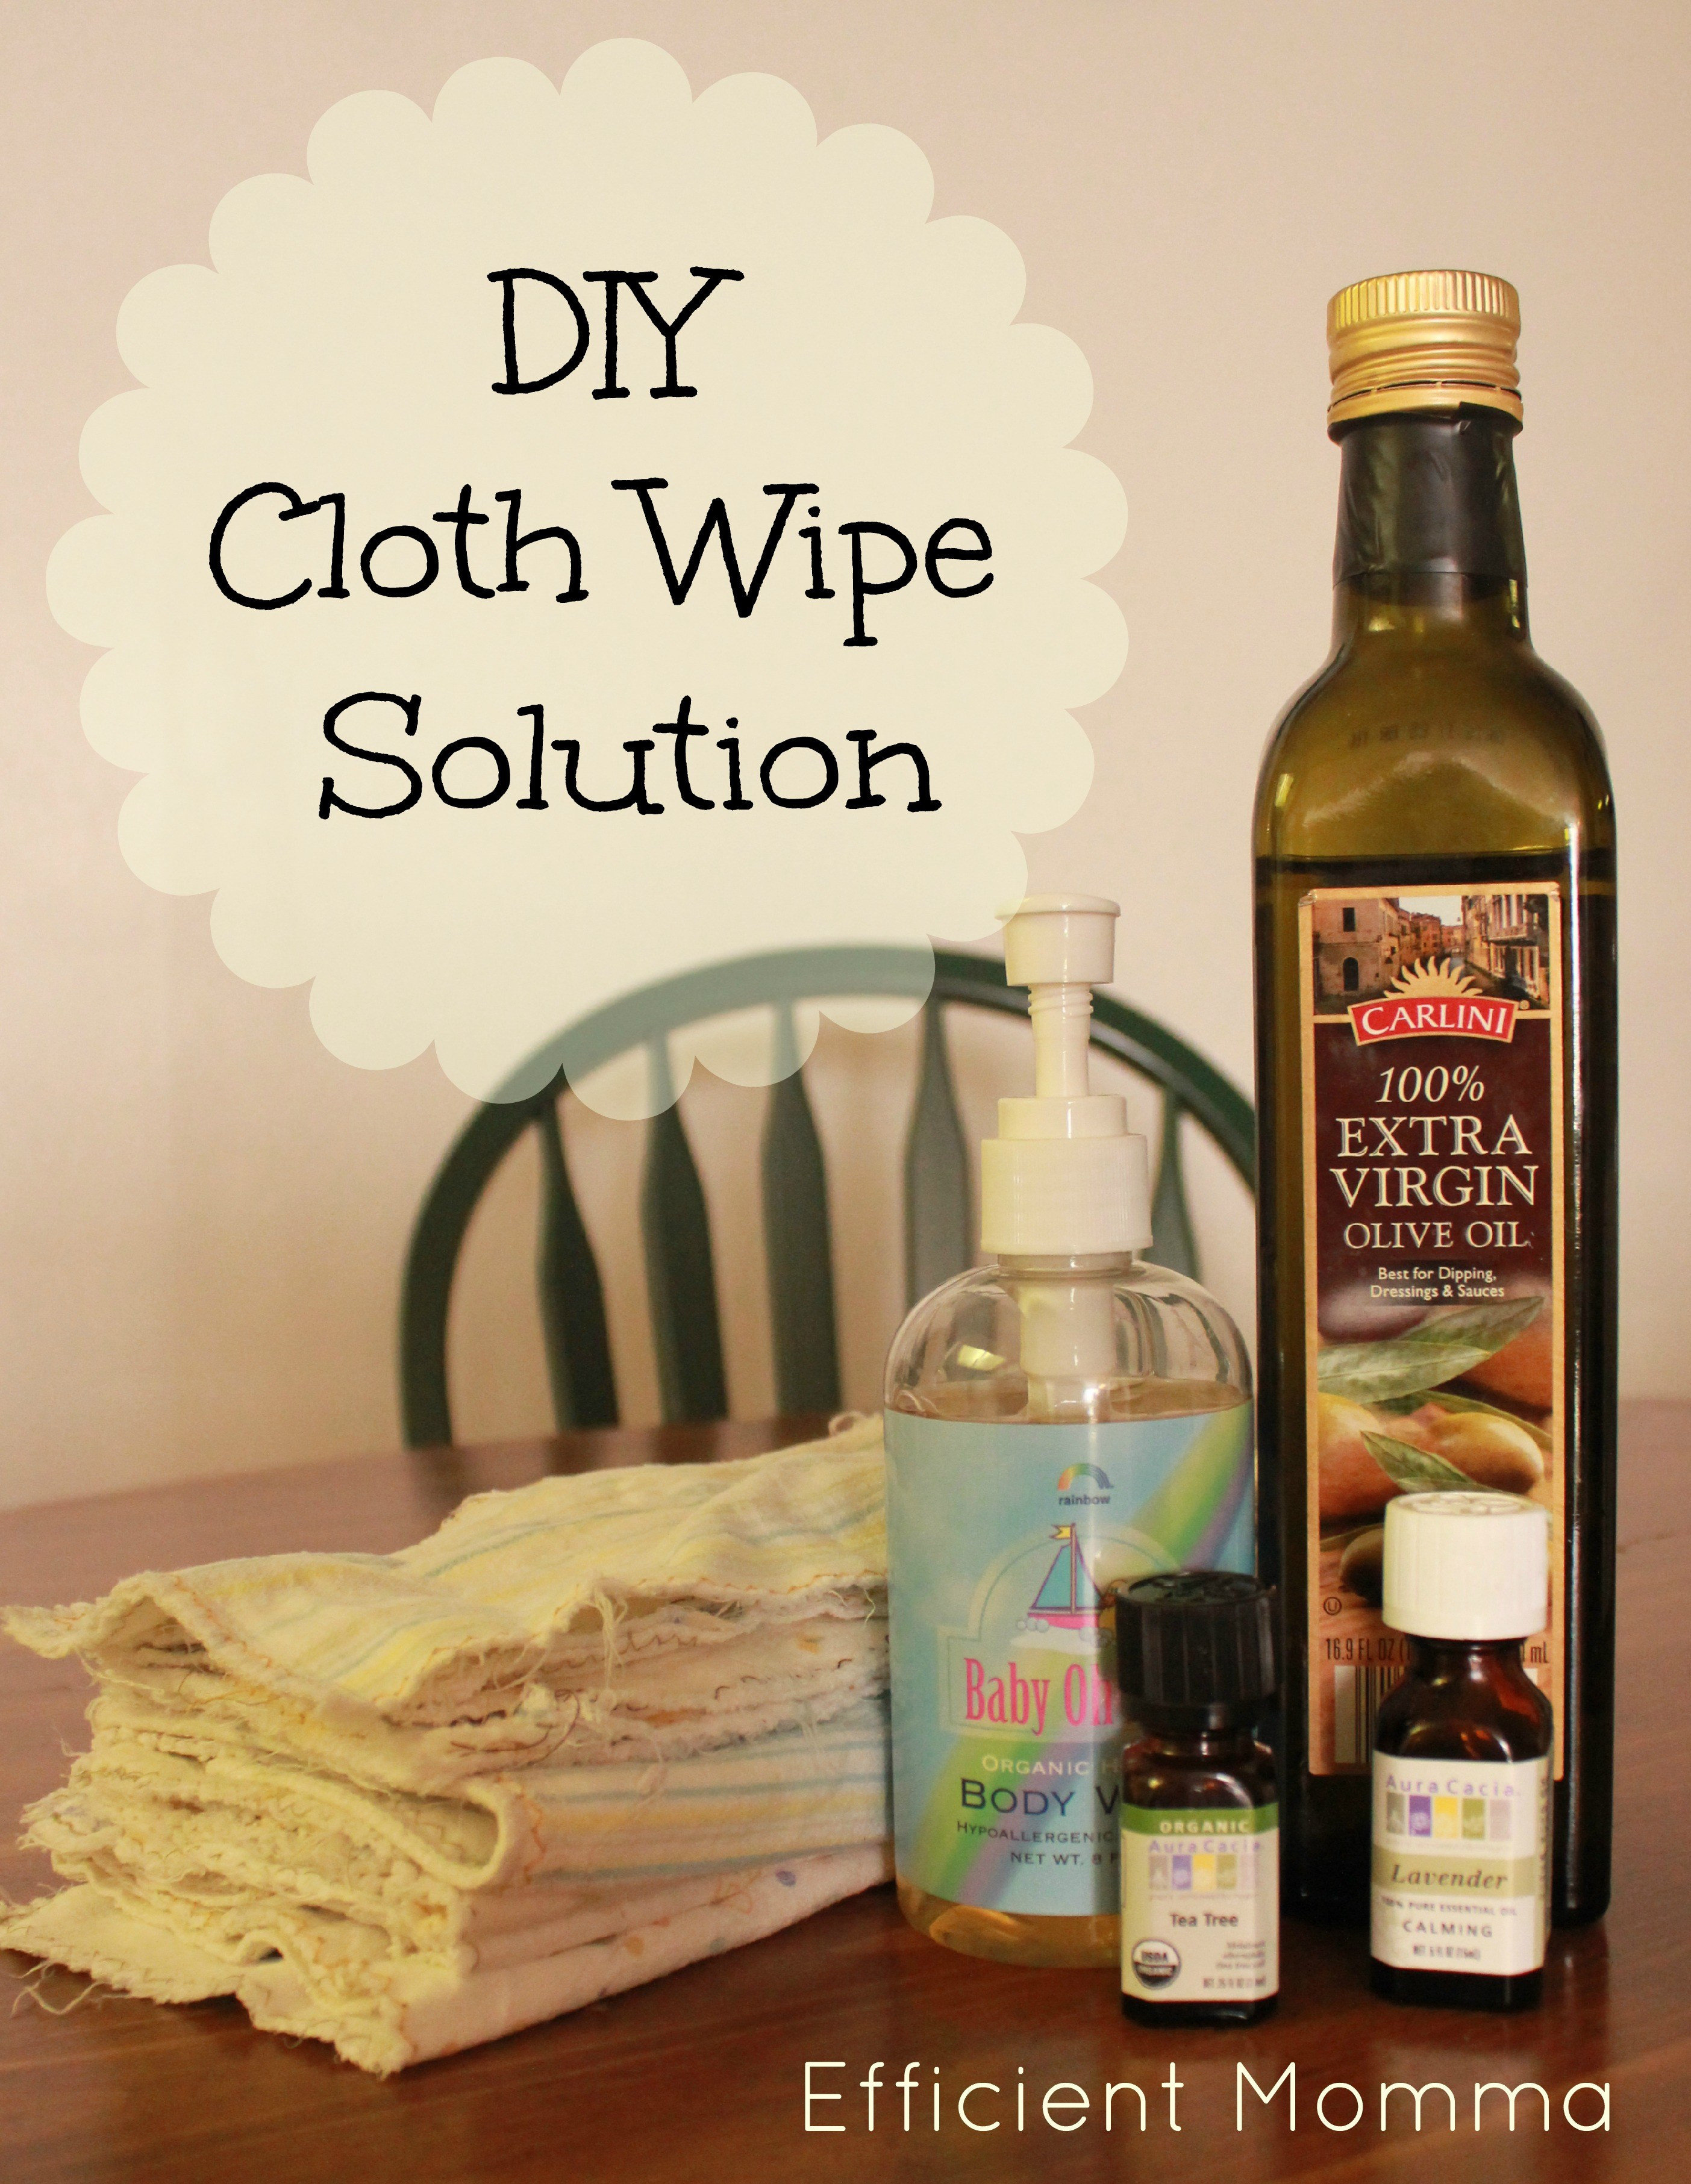 Best ideas about DIY Baby Wipes Solution . Save or Pin DIY Cloth Wipe Solution Efficient Momma Now.